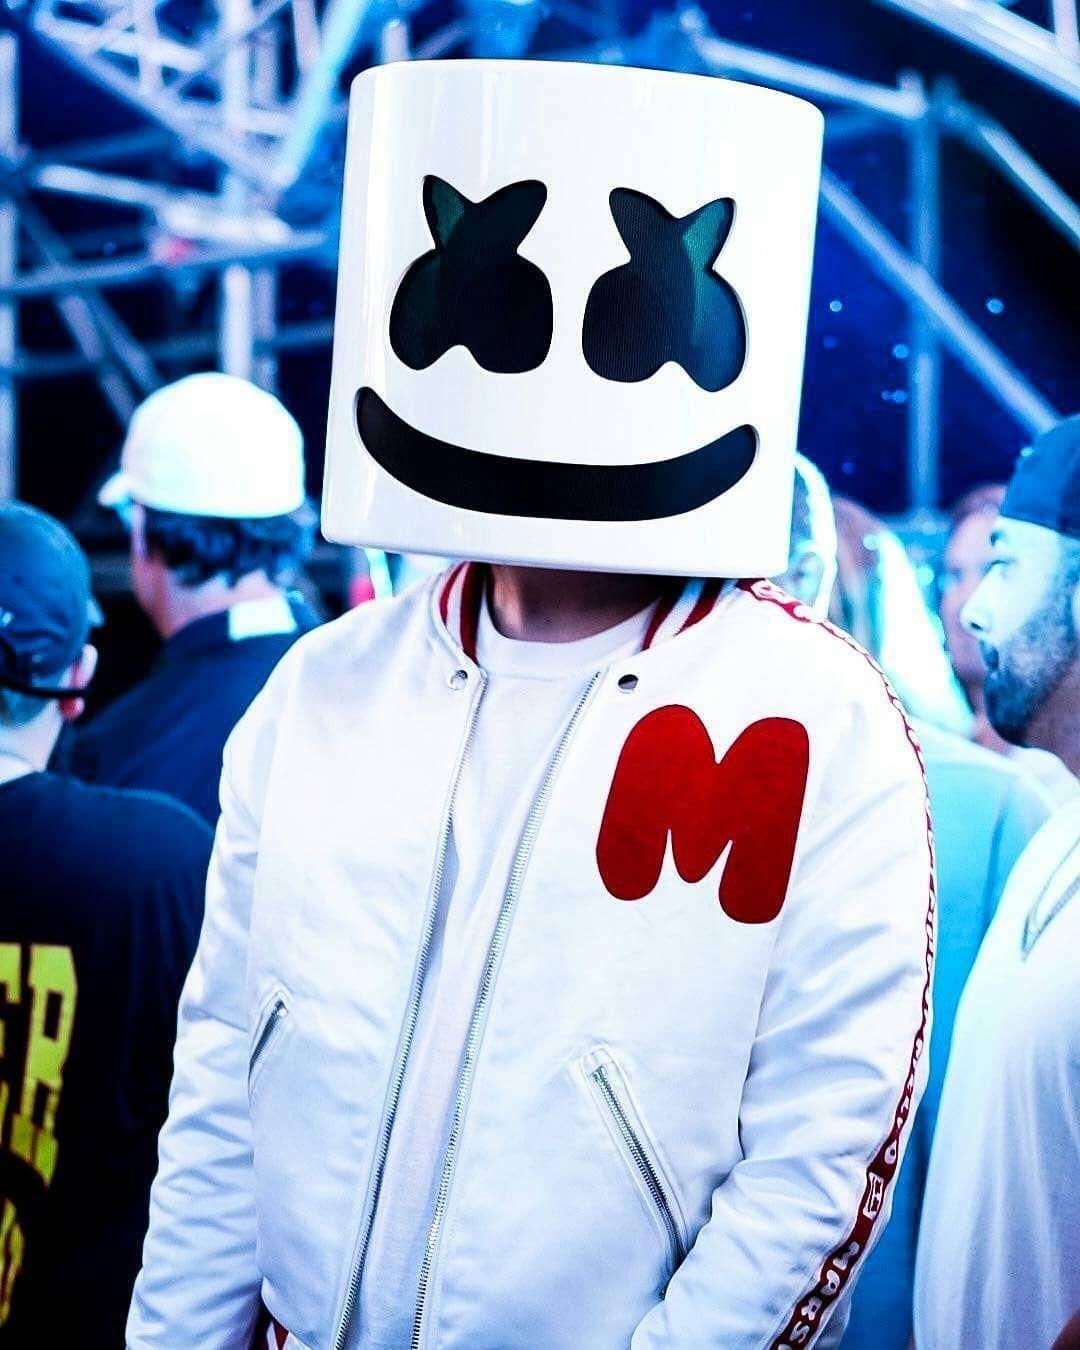 Alan Walker And Marshmello Wallpapers Wallpaper Cave